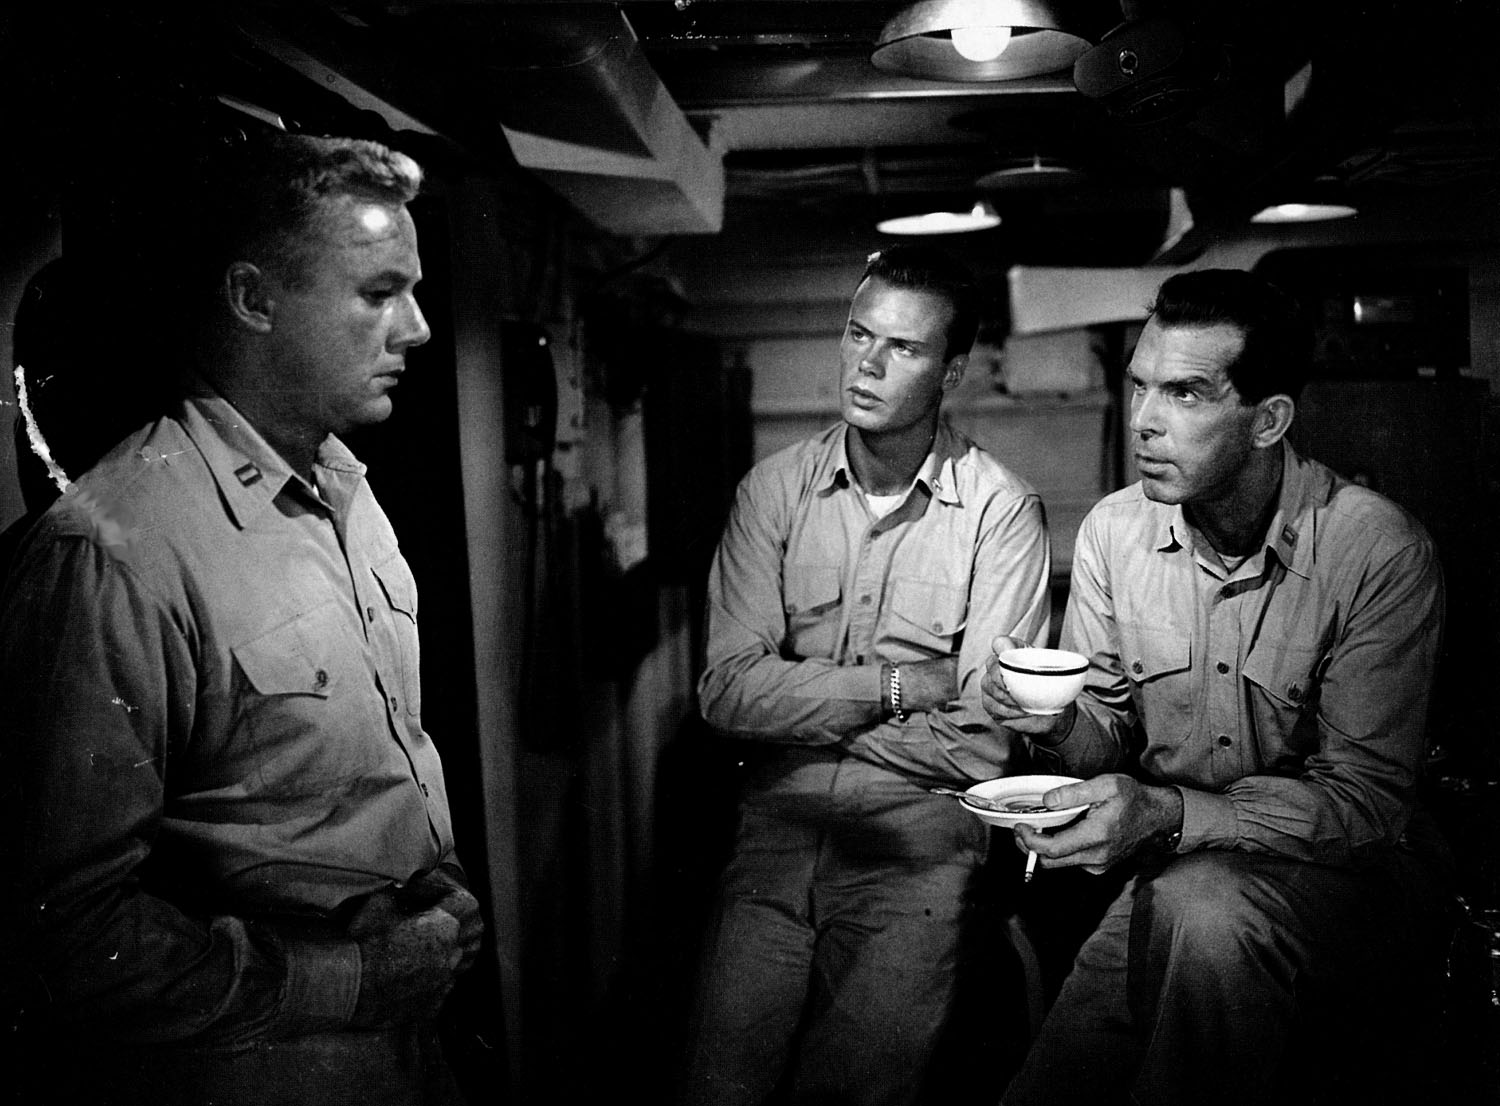 Van Johnson, Robert Francis, Fred MacMurray in The Caine Mutiny